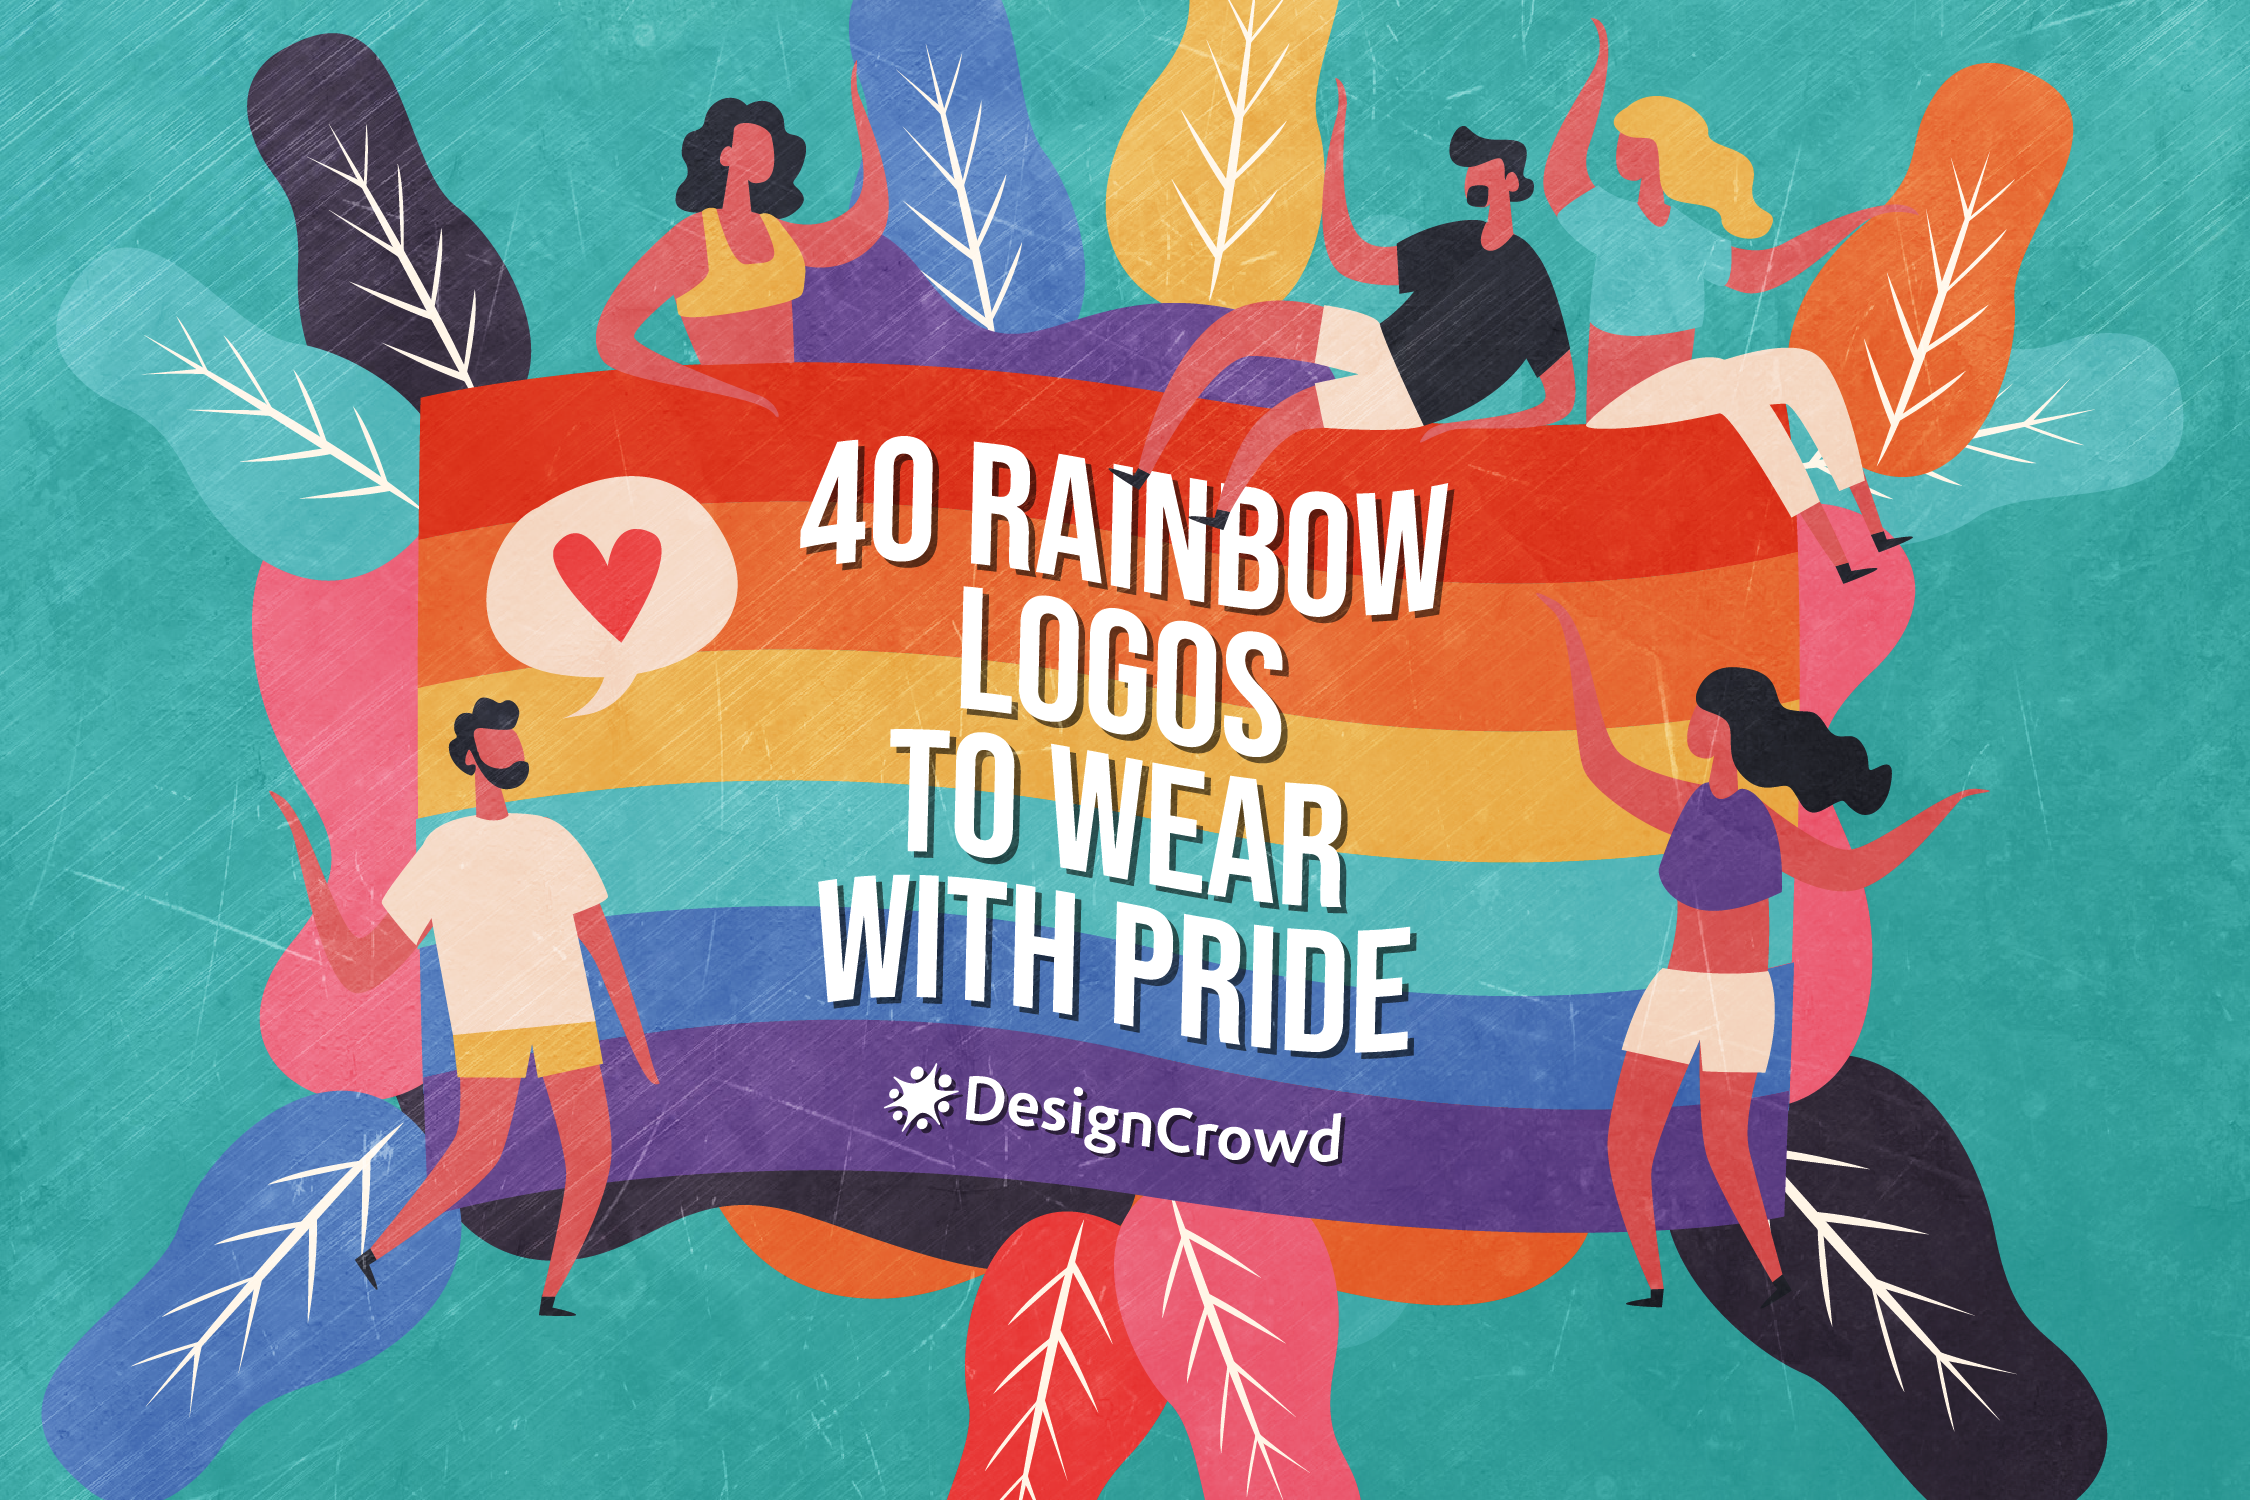 40 Rainbow Logos To Wear With Pride blog thumbnail